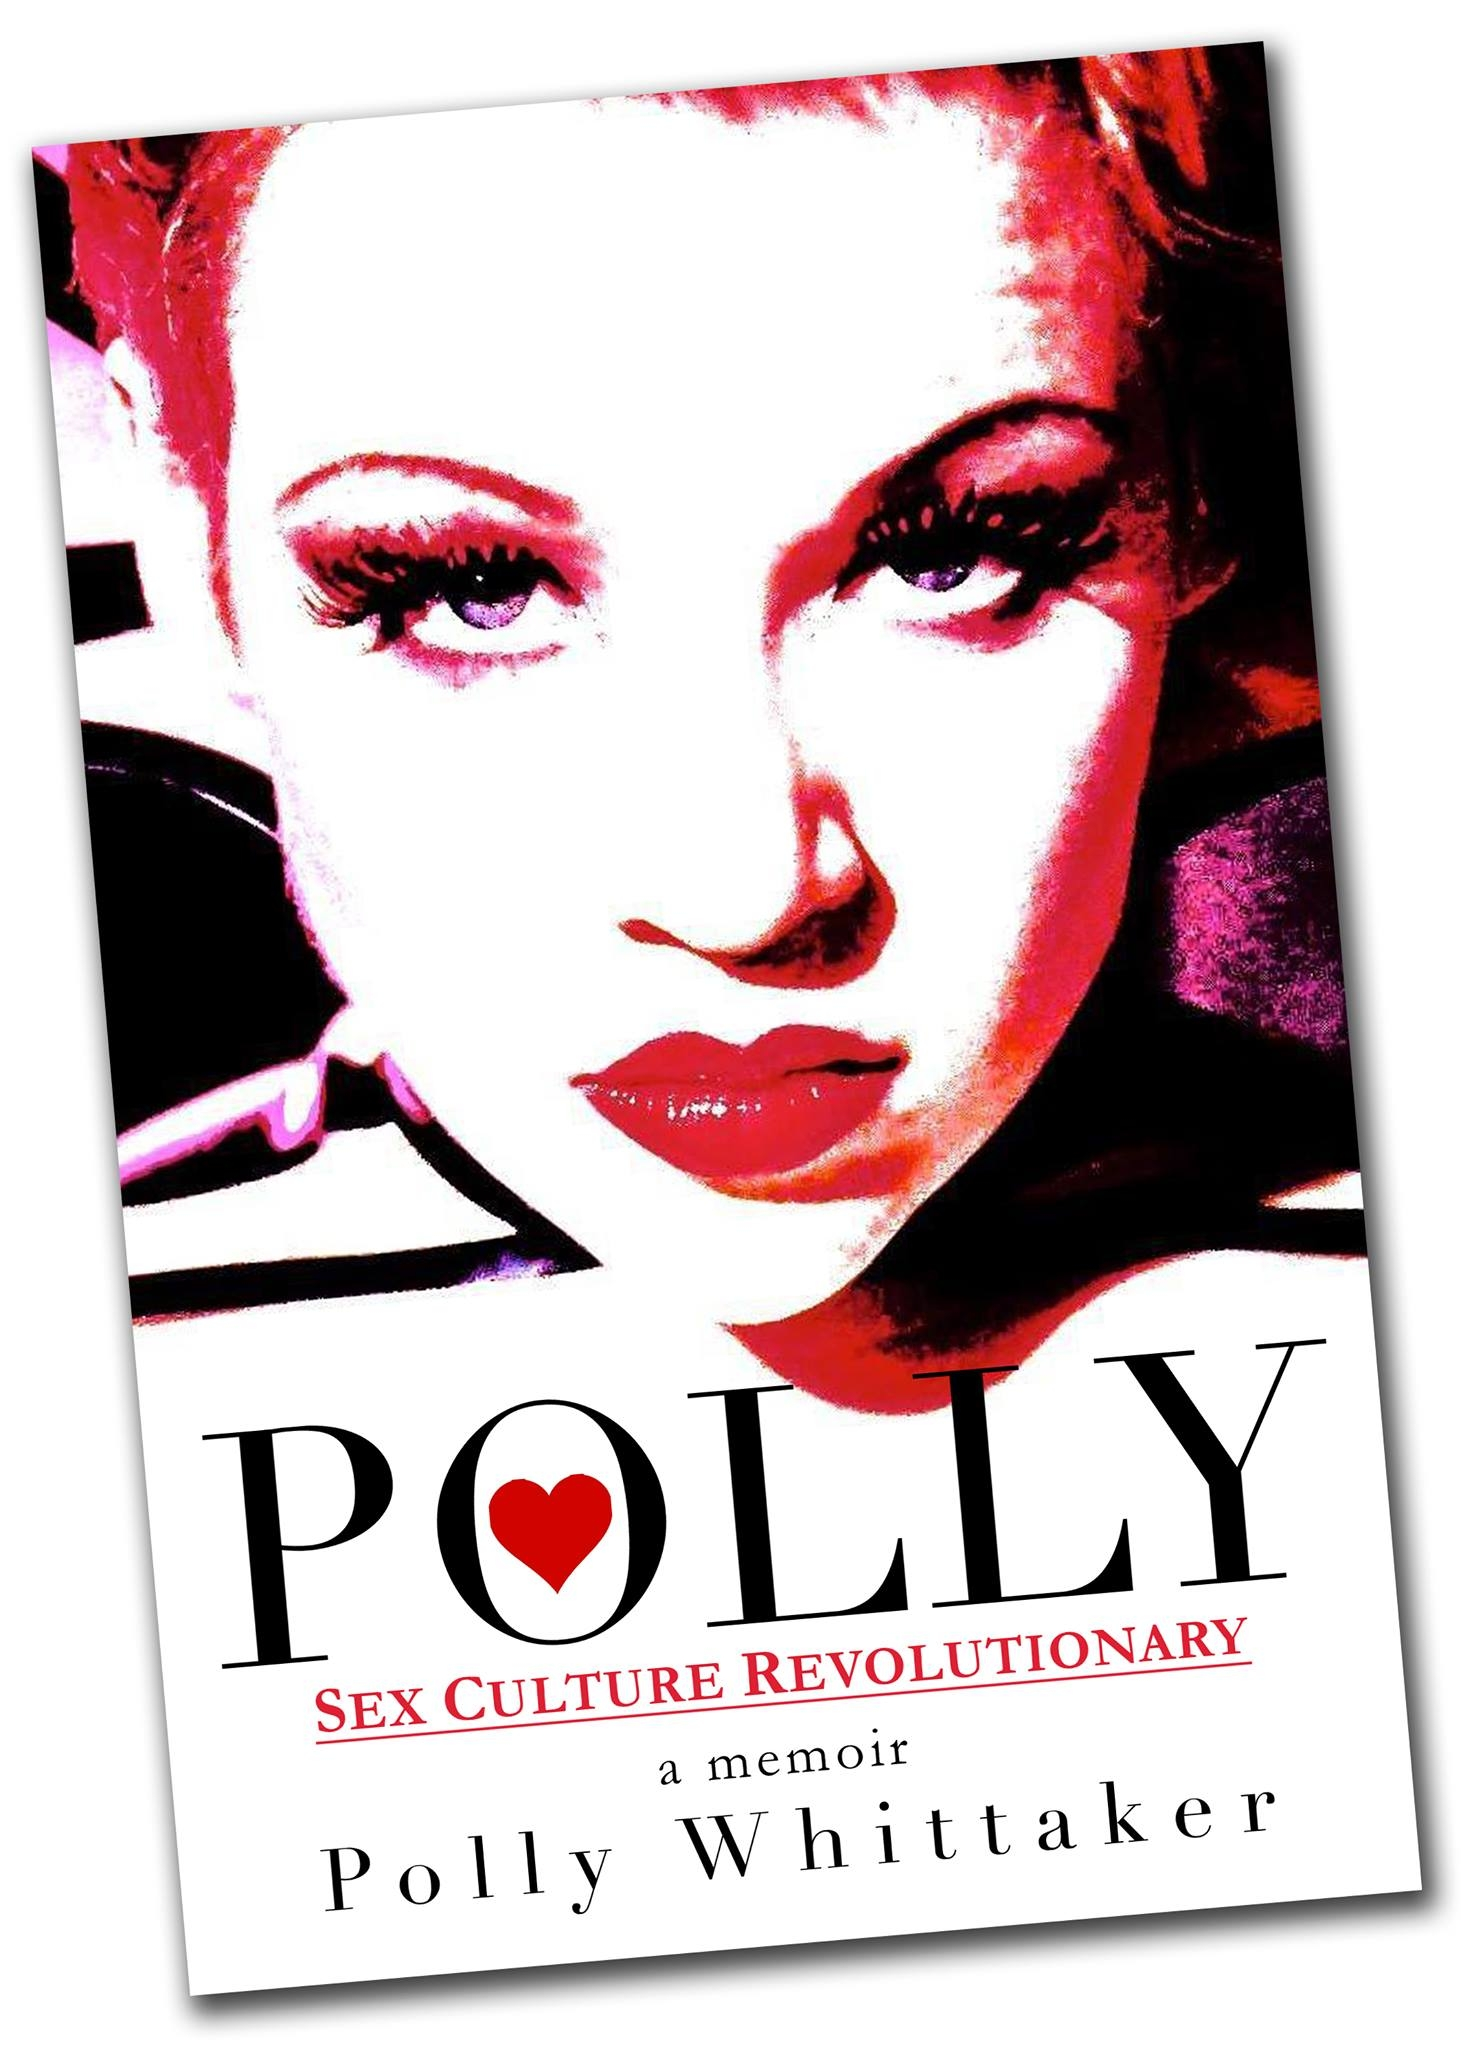 Sex culture, Kinky Salon, and the three Pollys